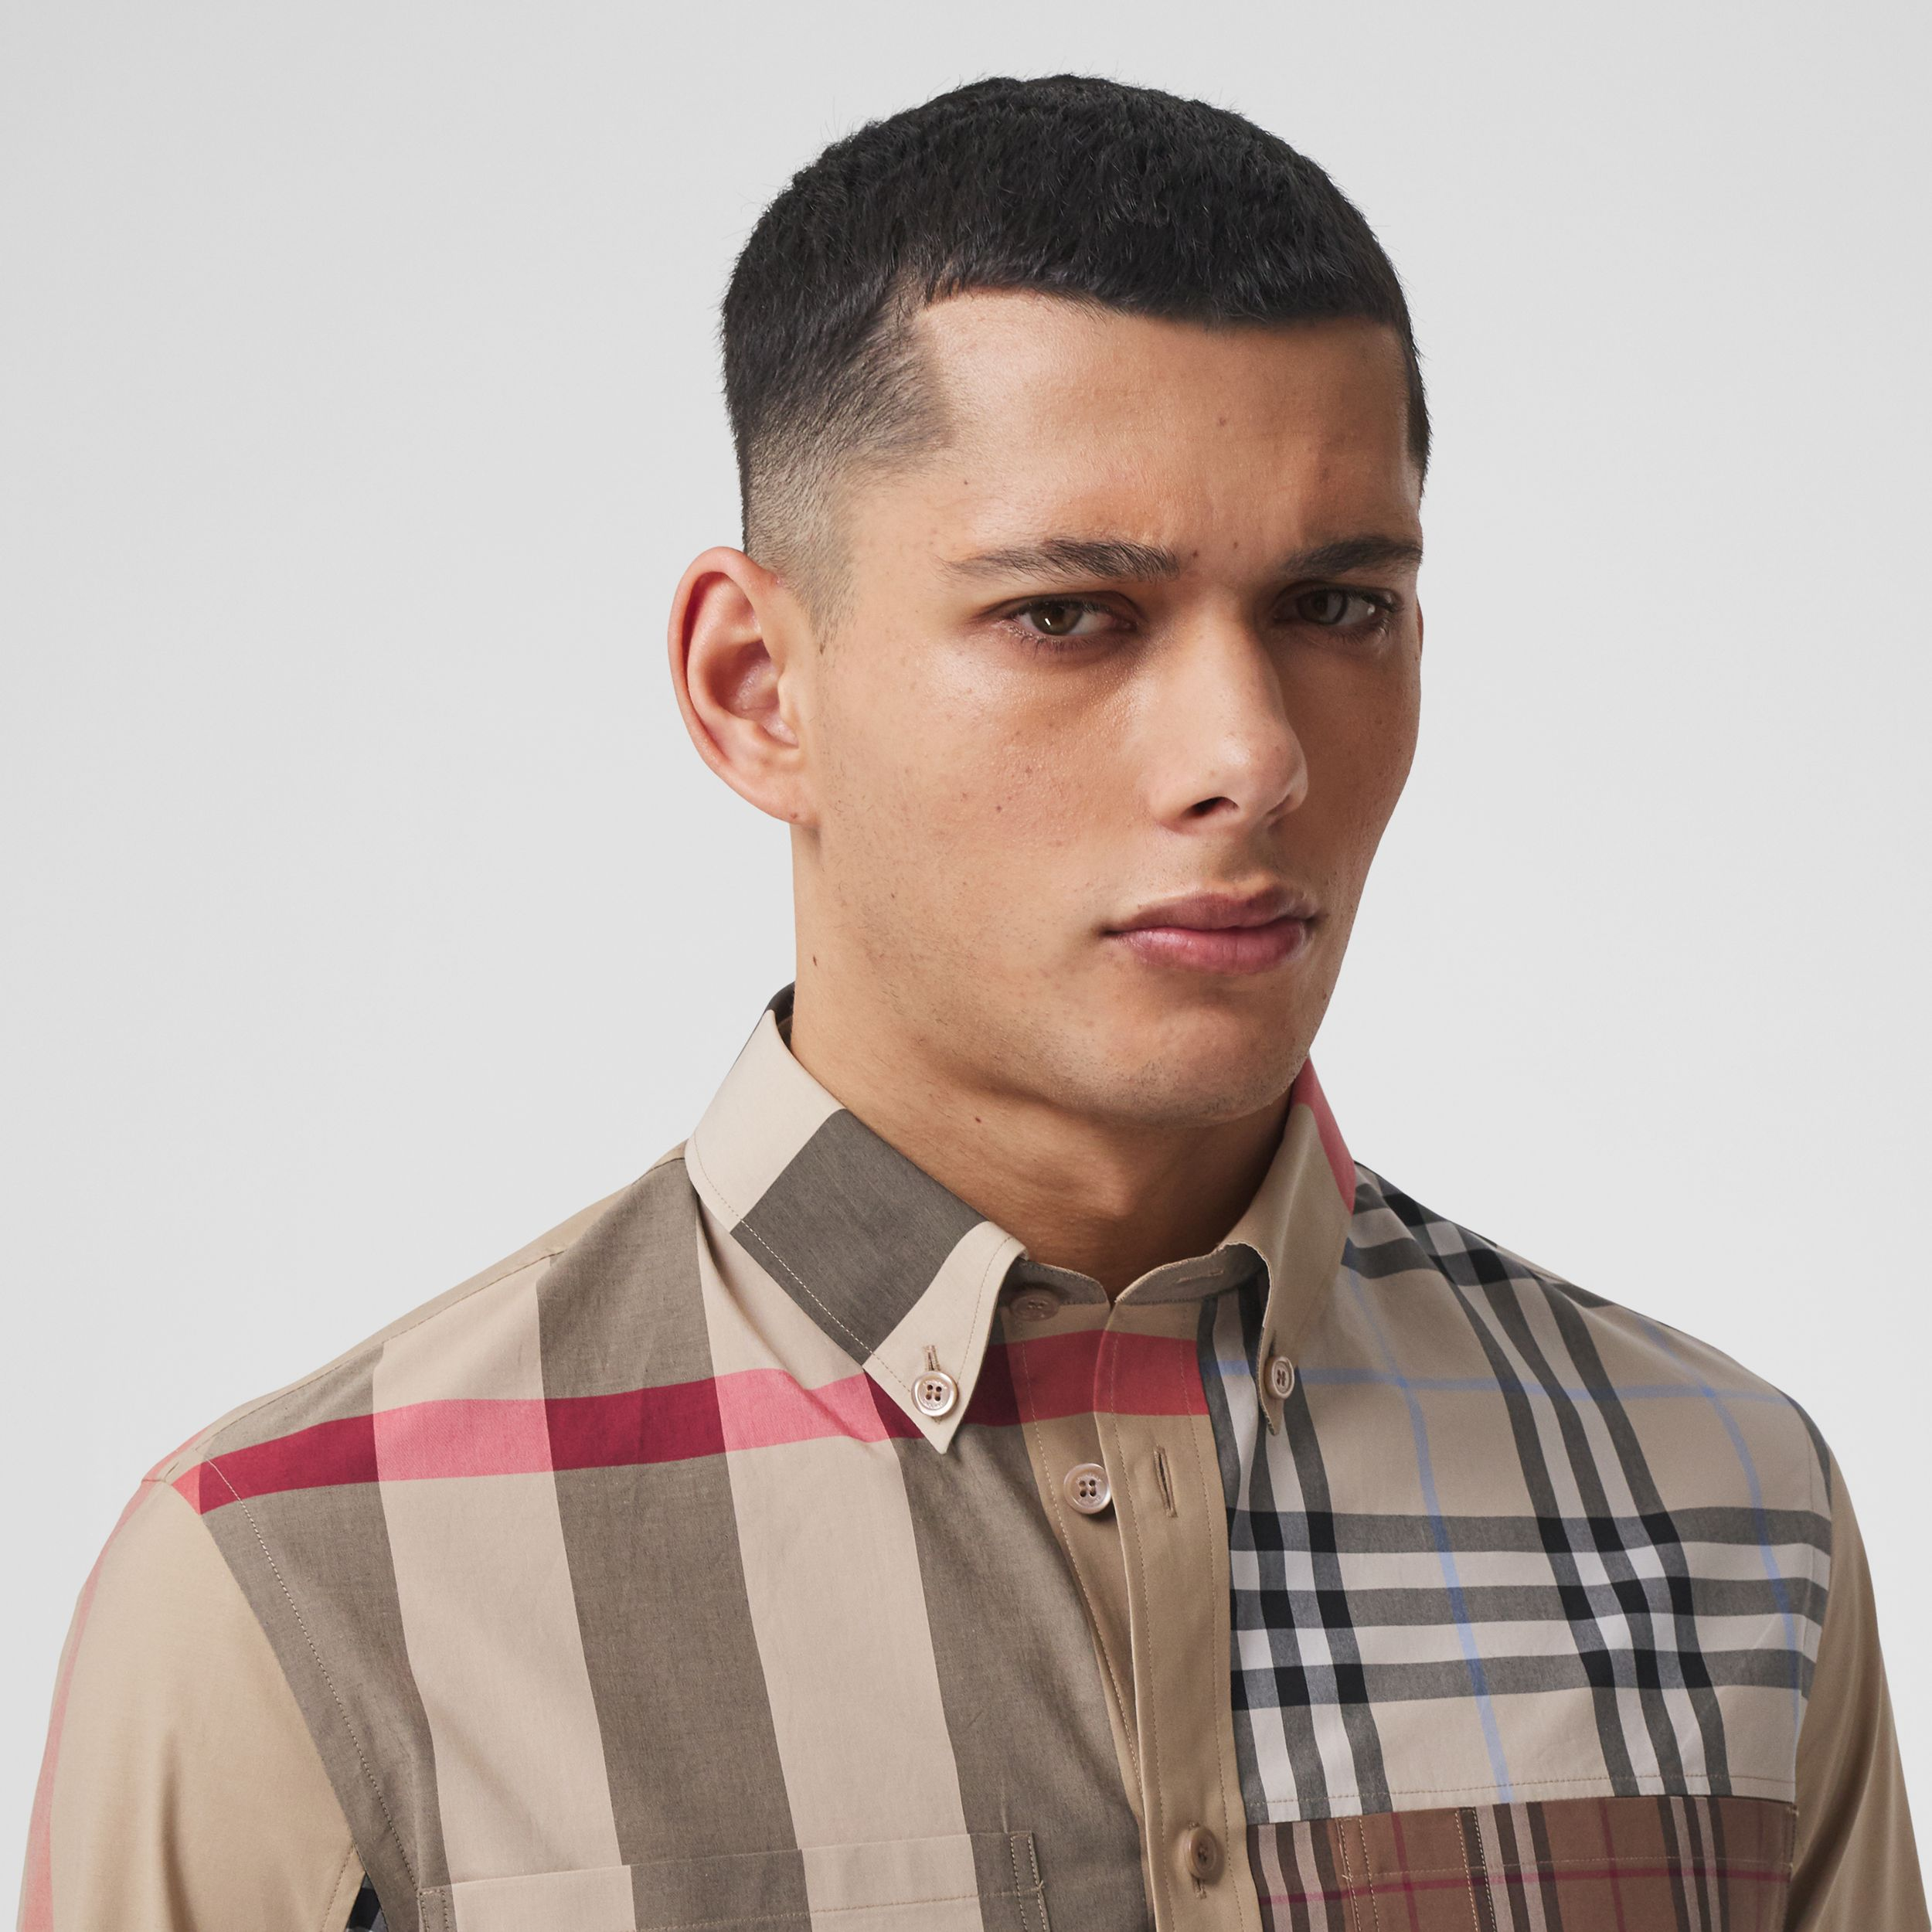 Contrast Check Stretch Cotton Poplin Shirt in Light Almond - Men | Burberry - 2